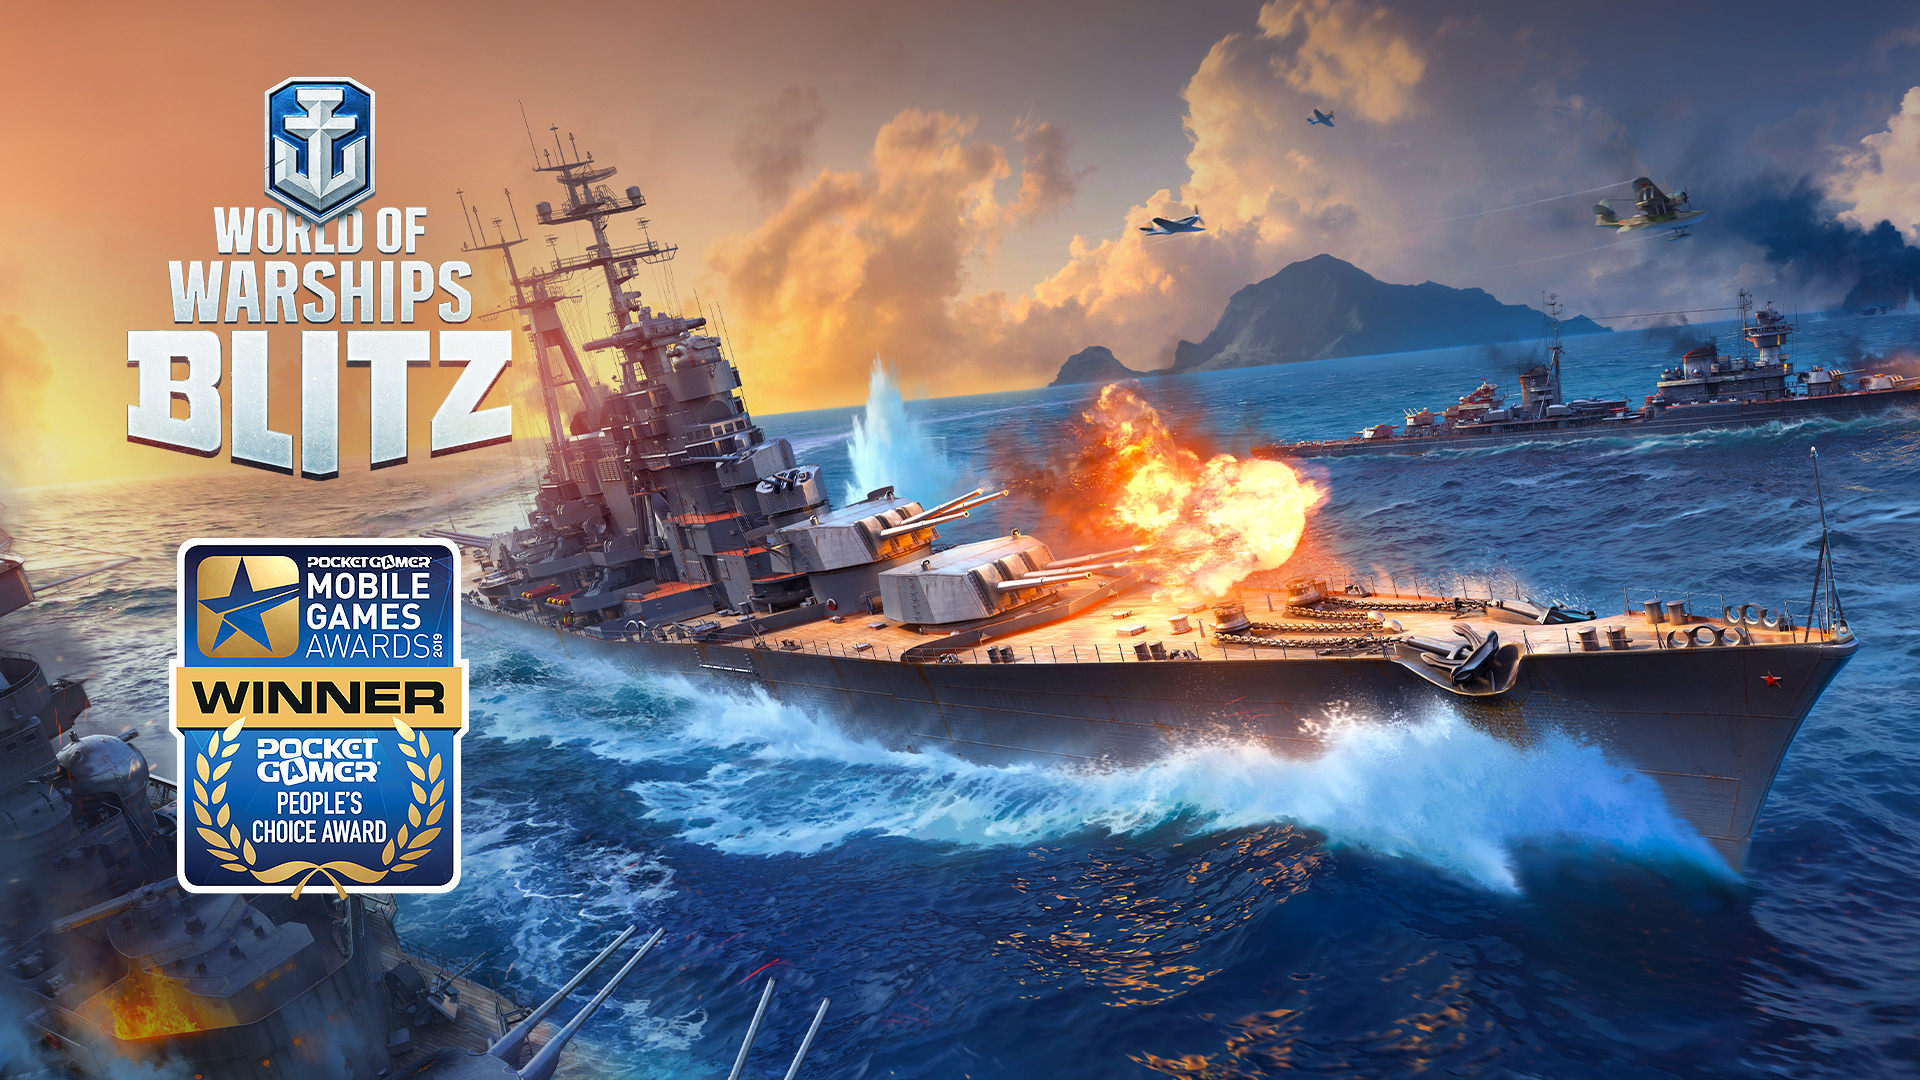 World of Warships Blitz Takes Home the Pocket Gamer People's